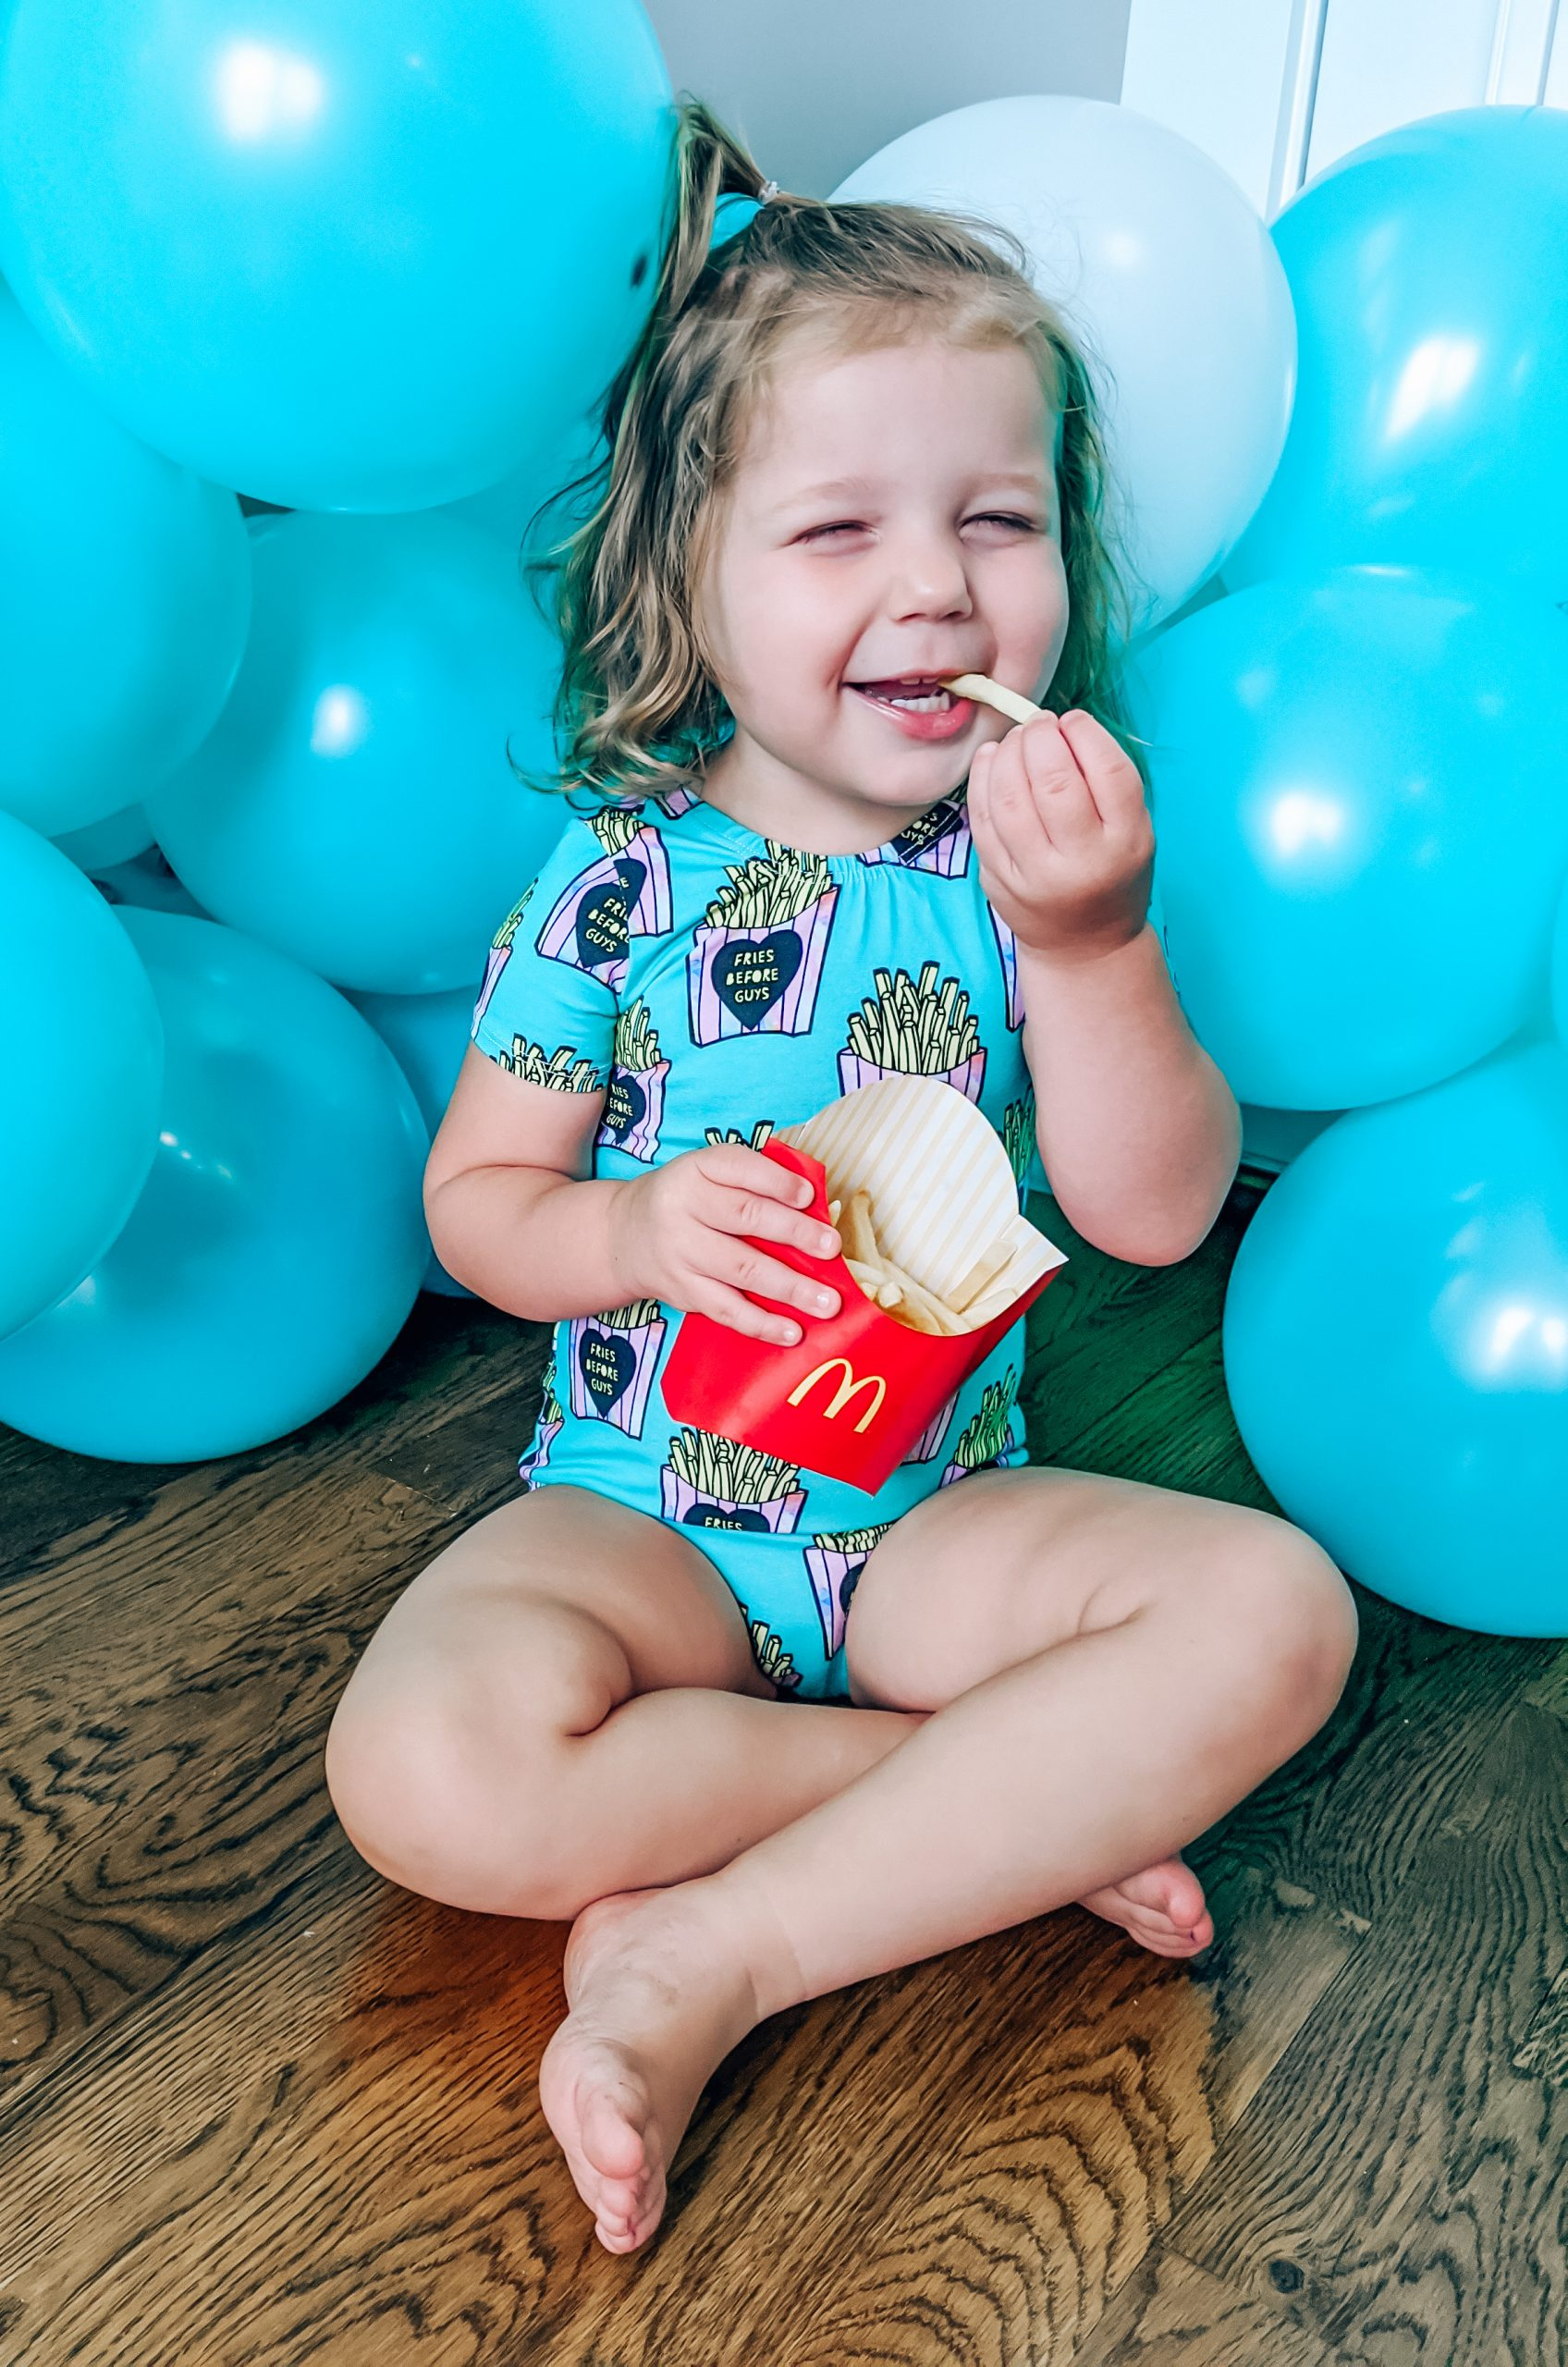 Fries Before Guys Outfits - Fries Before Guys Leotard - Lili Lane Instagram Shop, Lili.Lane IG shop, the cutest Fries Before Guys outfits and leotards for your dancer! #lililane #friesbeforeguys #mcdonalds